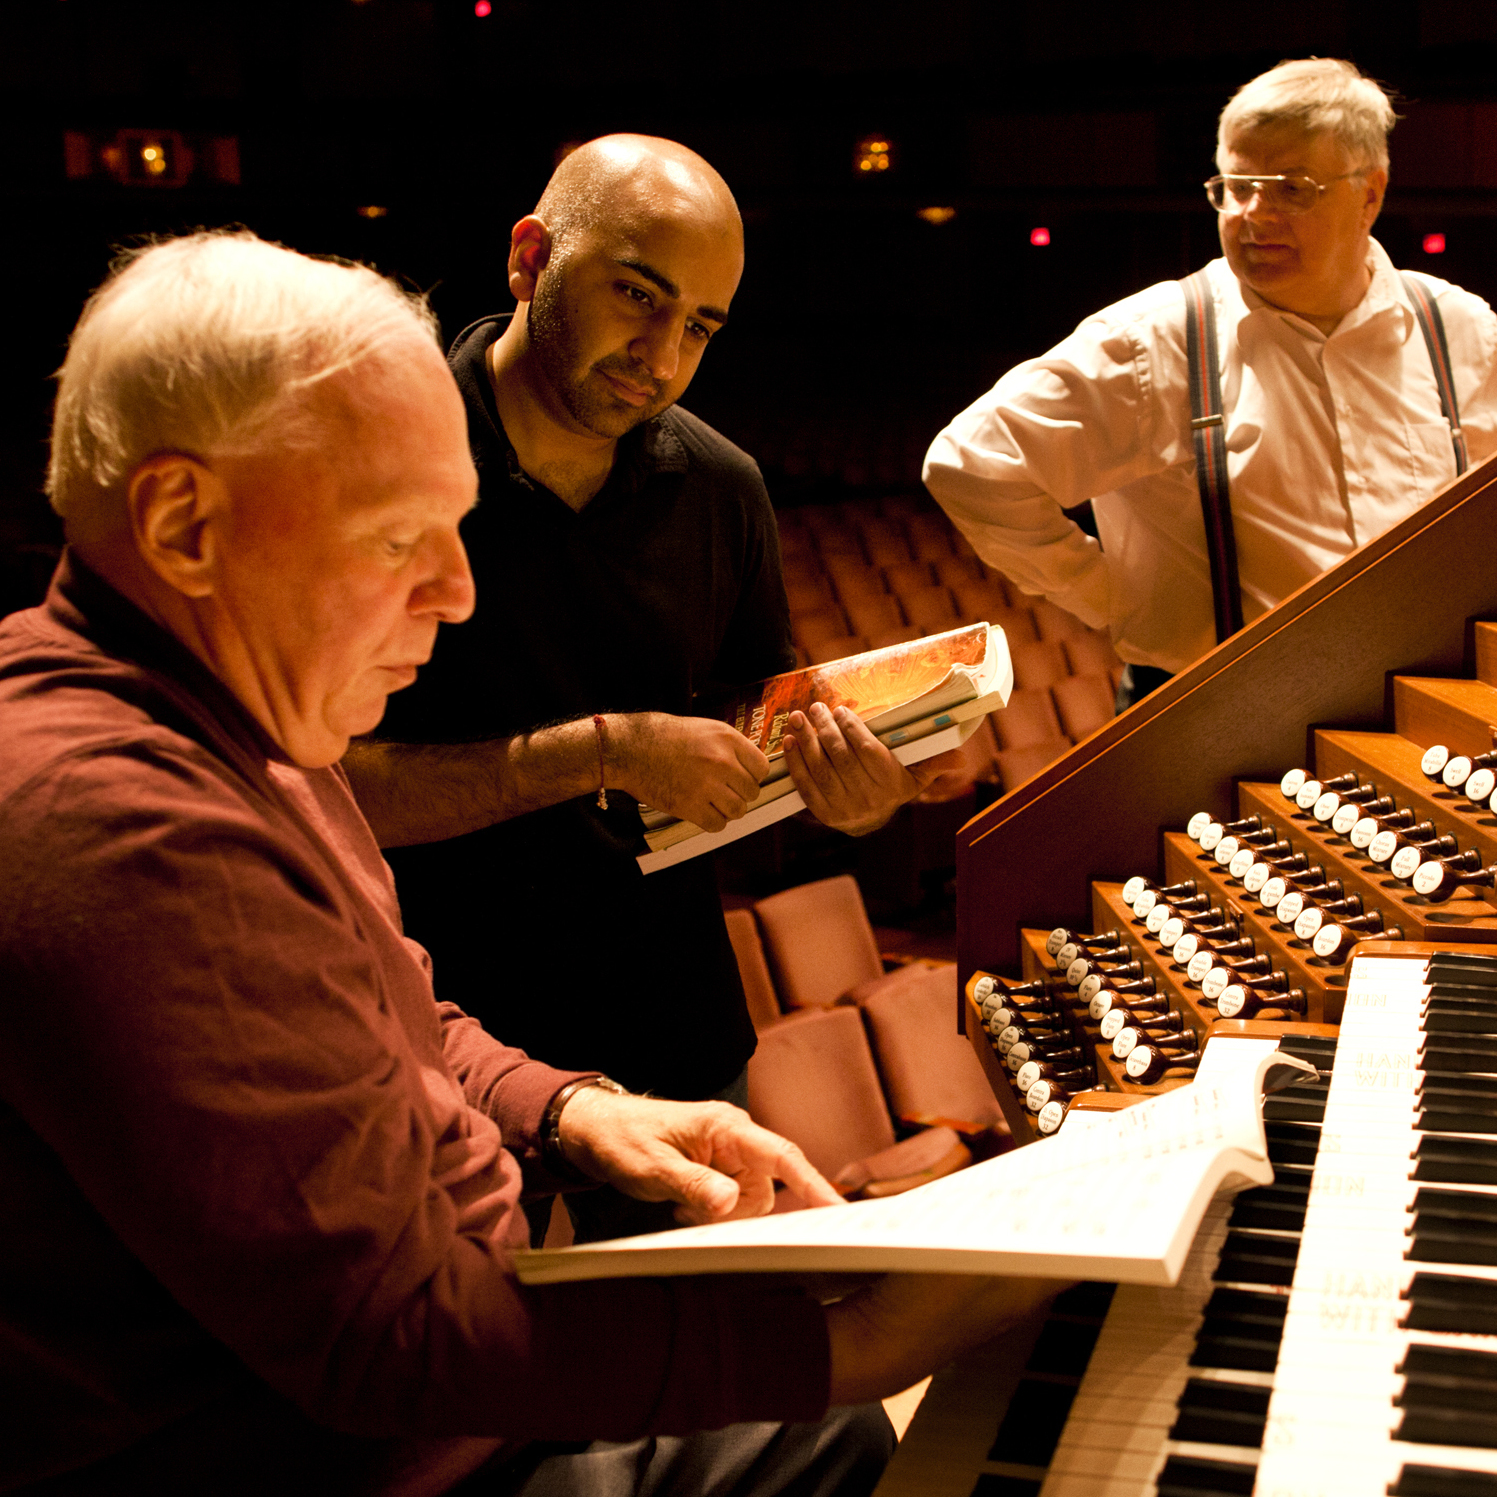 After years of waiting, the Kennedy Center has a new symphonic organ replacing its old organ installed in 1972. The $2 million project will culminate in the organ's debut on Nov. 27. William Neil (left), the National Symphony Orchestra organist, speaks with NSO Assistant Conductor Ankush Kumar Bahl (center) during the organ's test with the orchestra on Oct. 18.